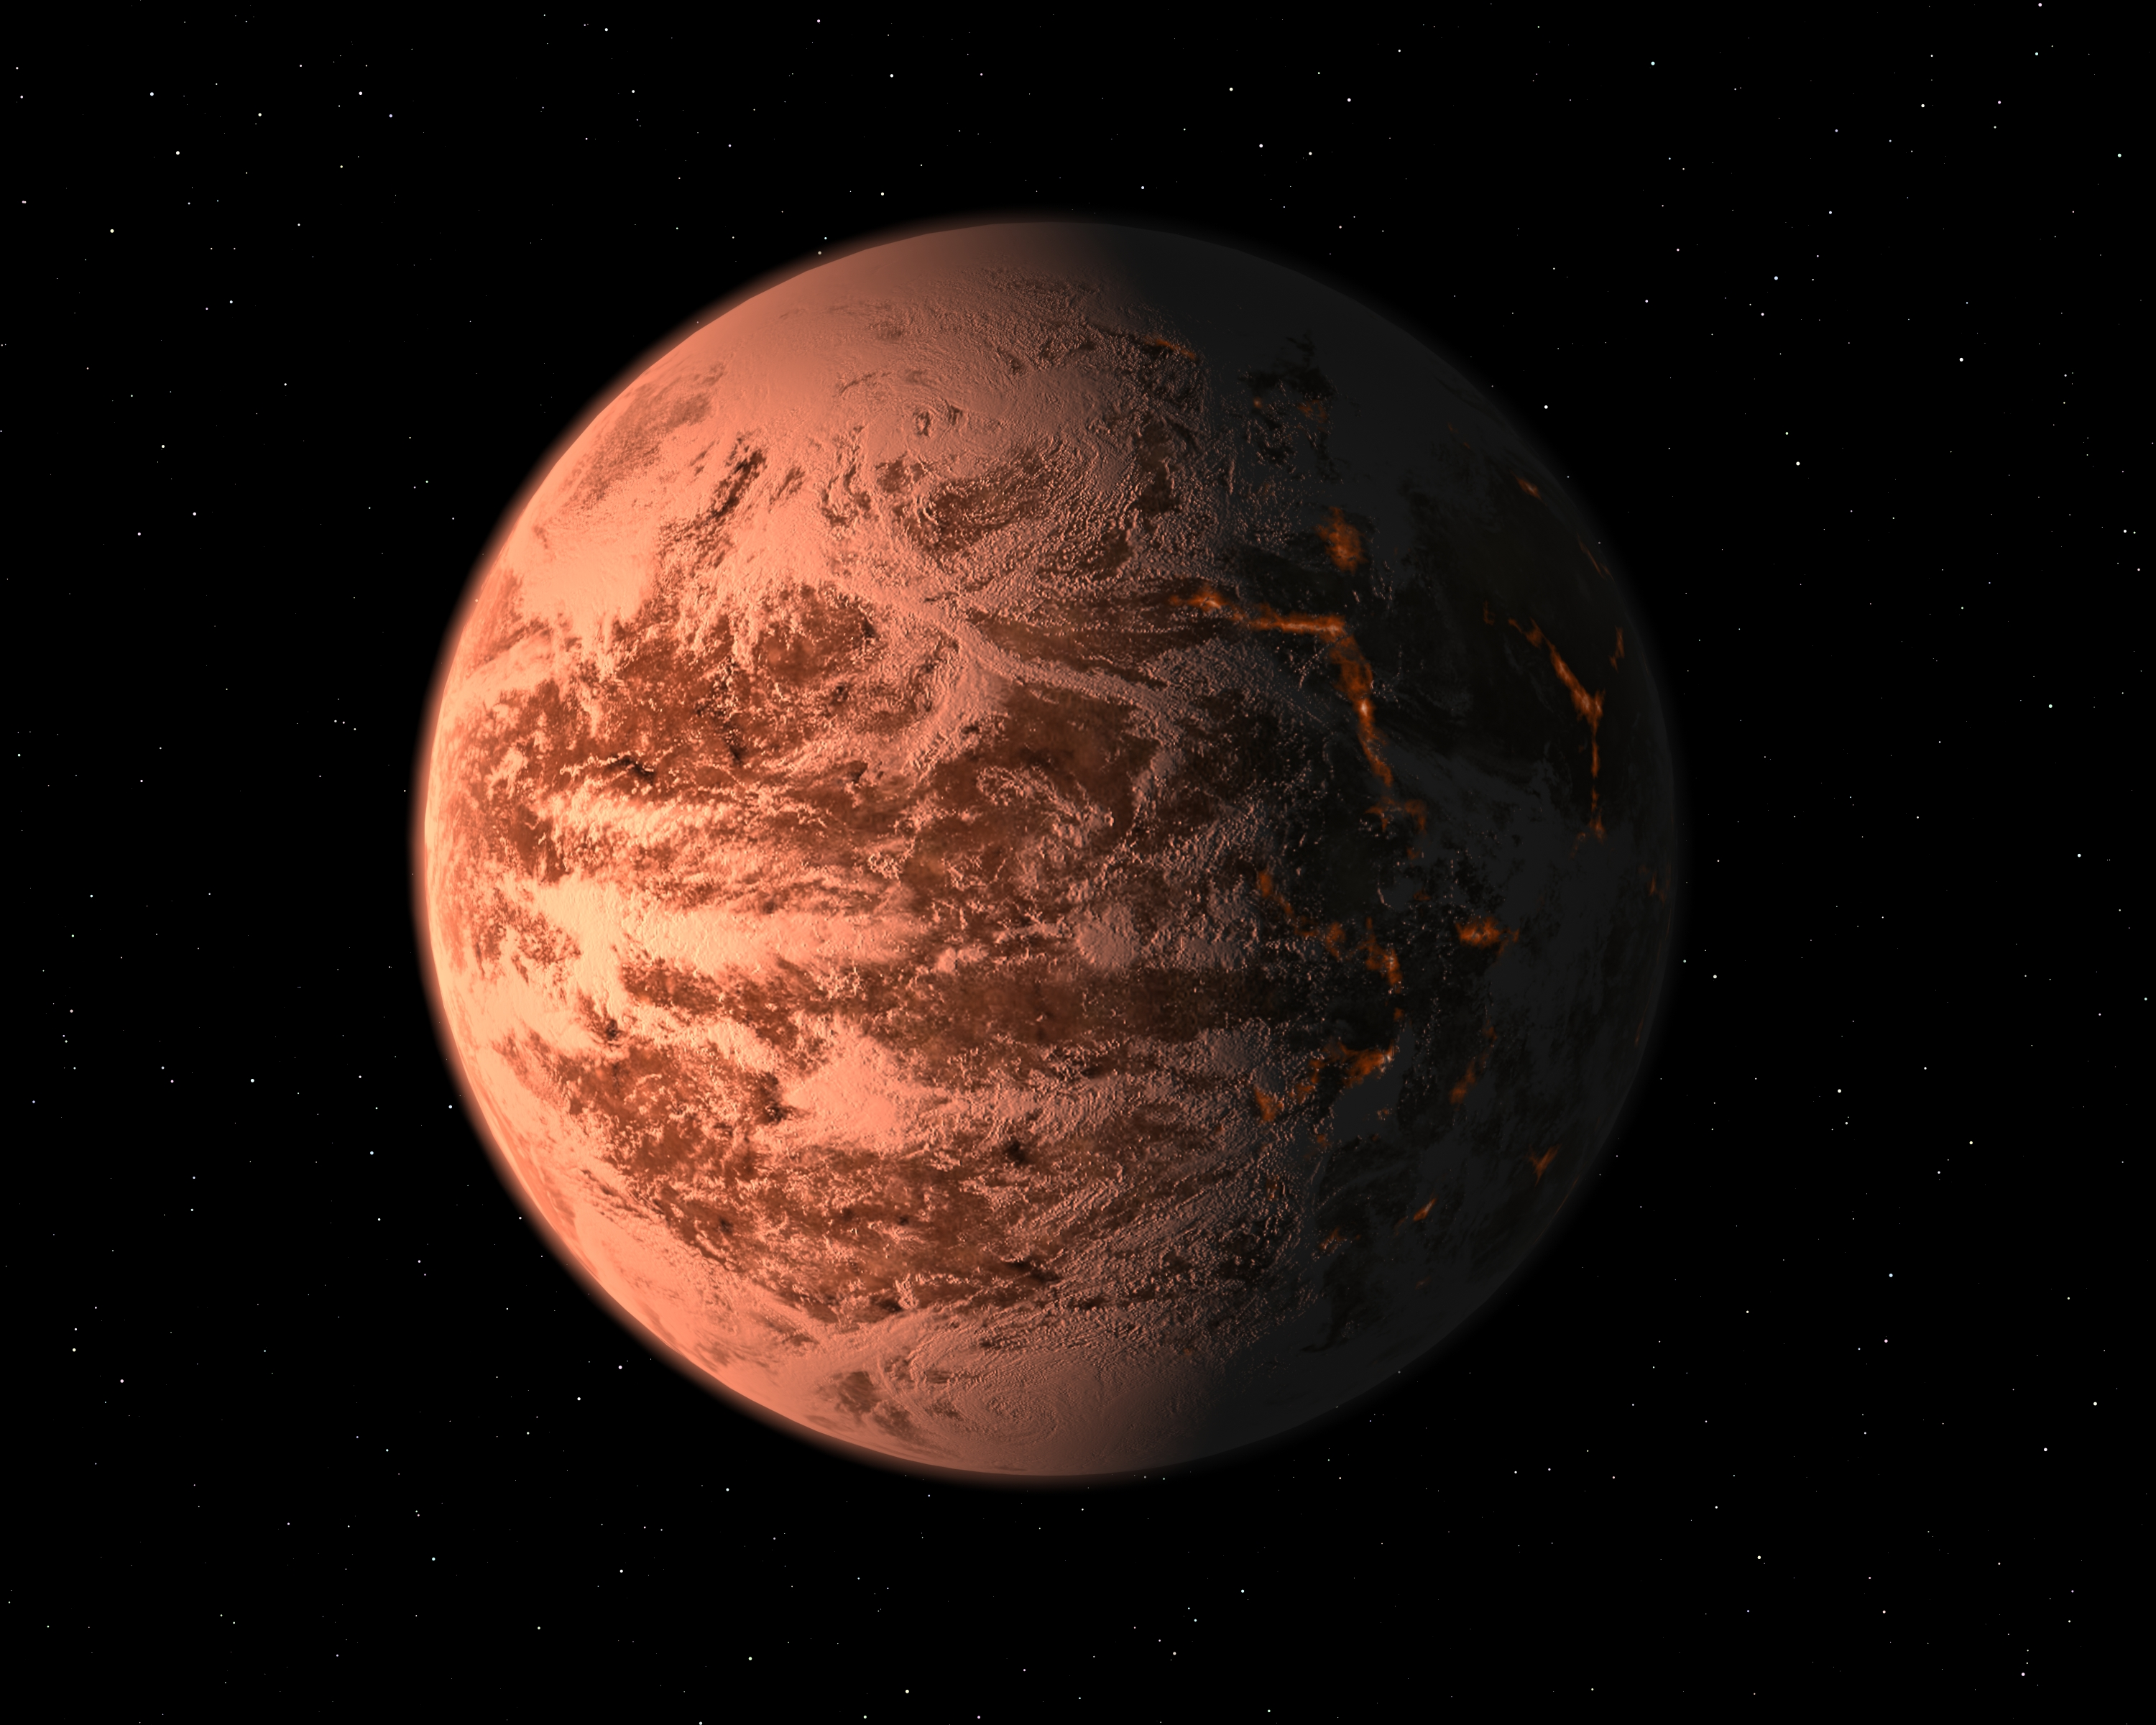 Sometime ago I read something about a new planet that was found by NASA, ...